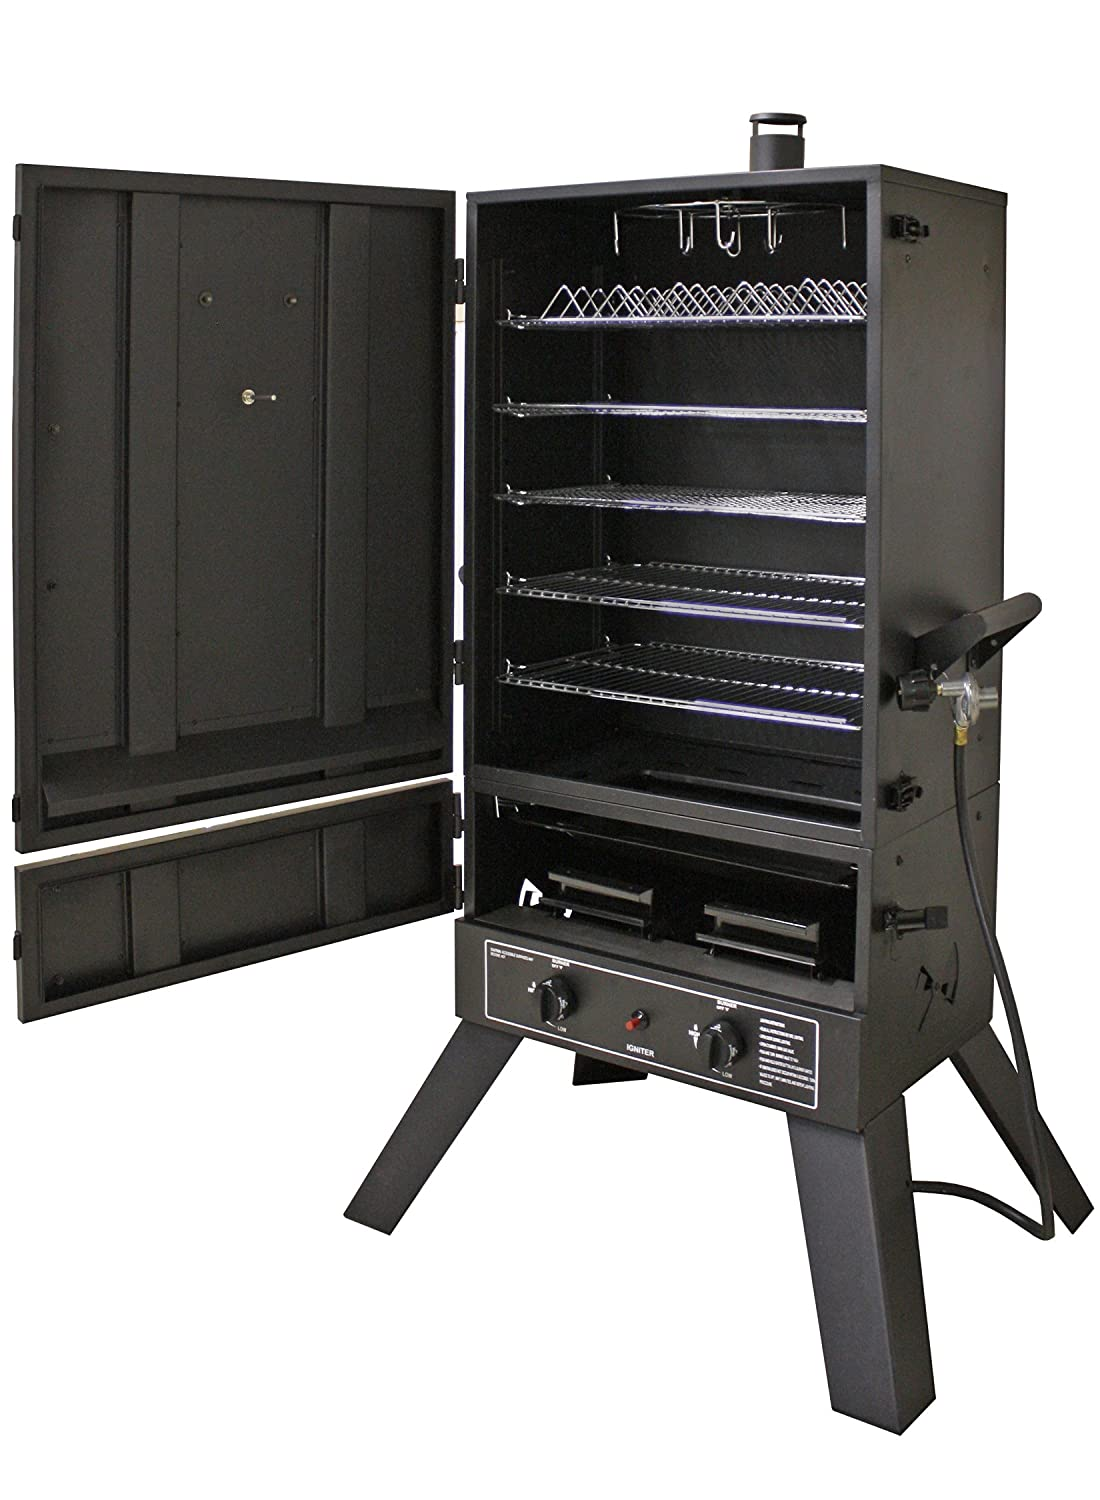 Gas smoker with good stand